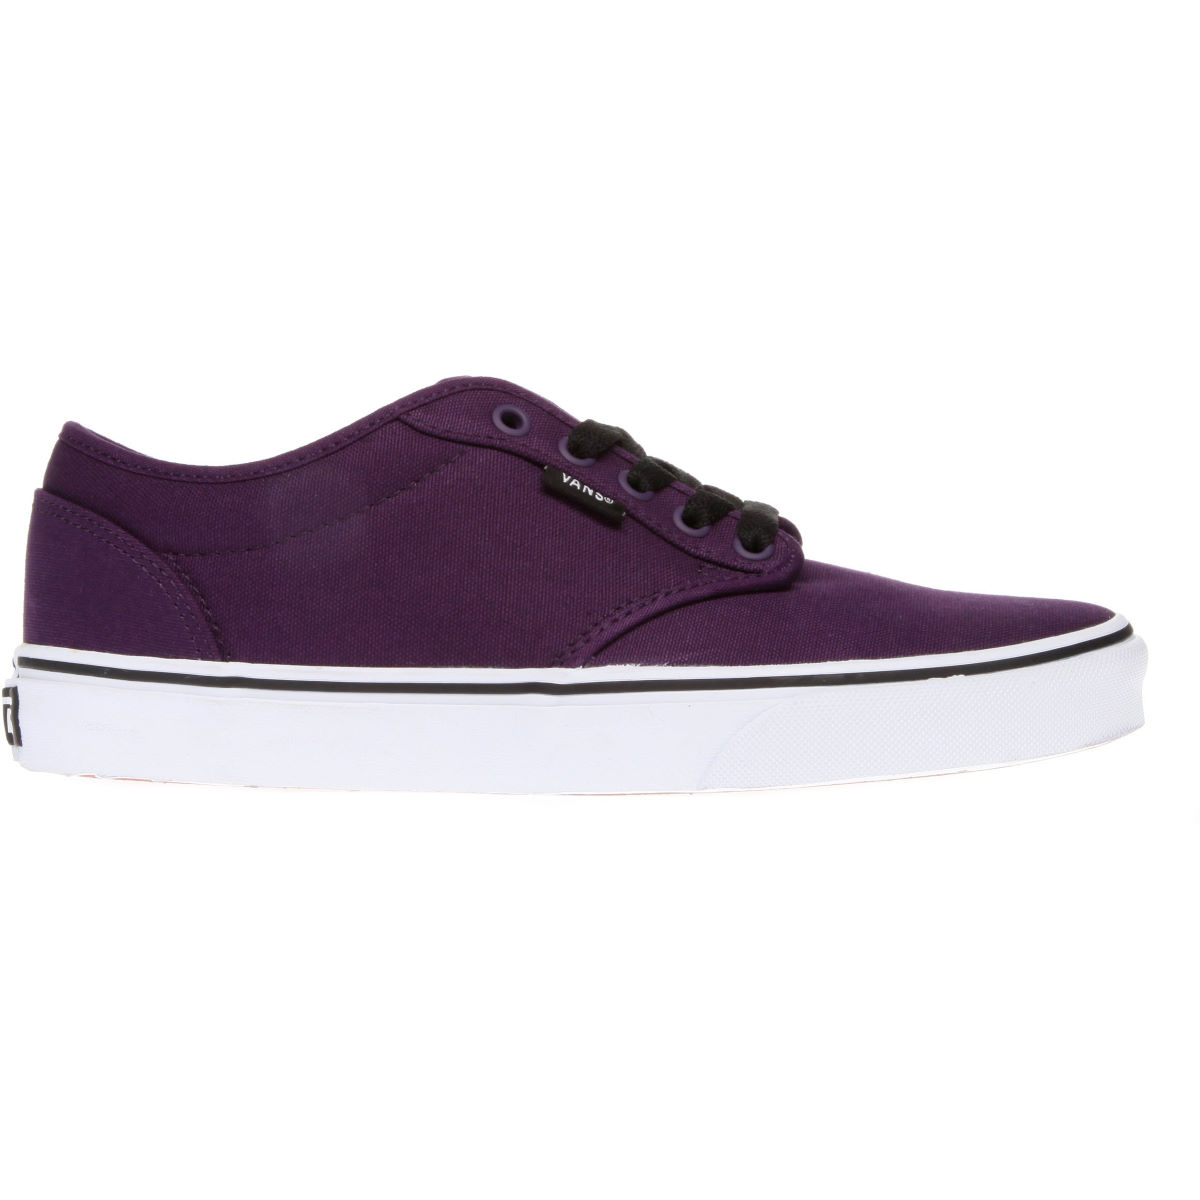 Vans Atwood Canvas Skate Shoes 2013